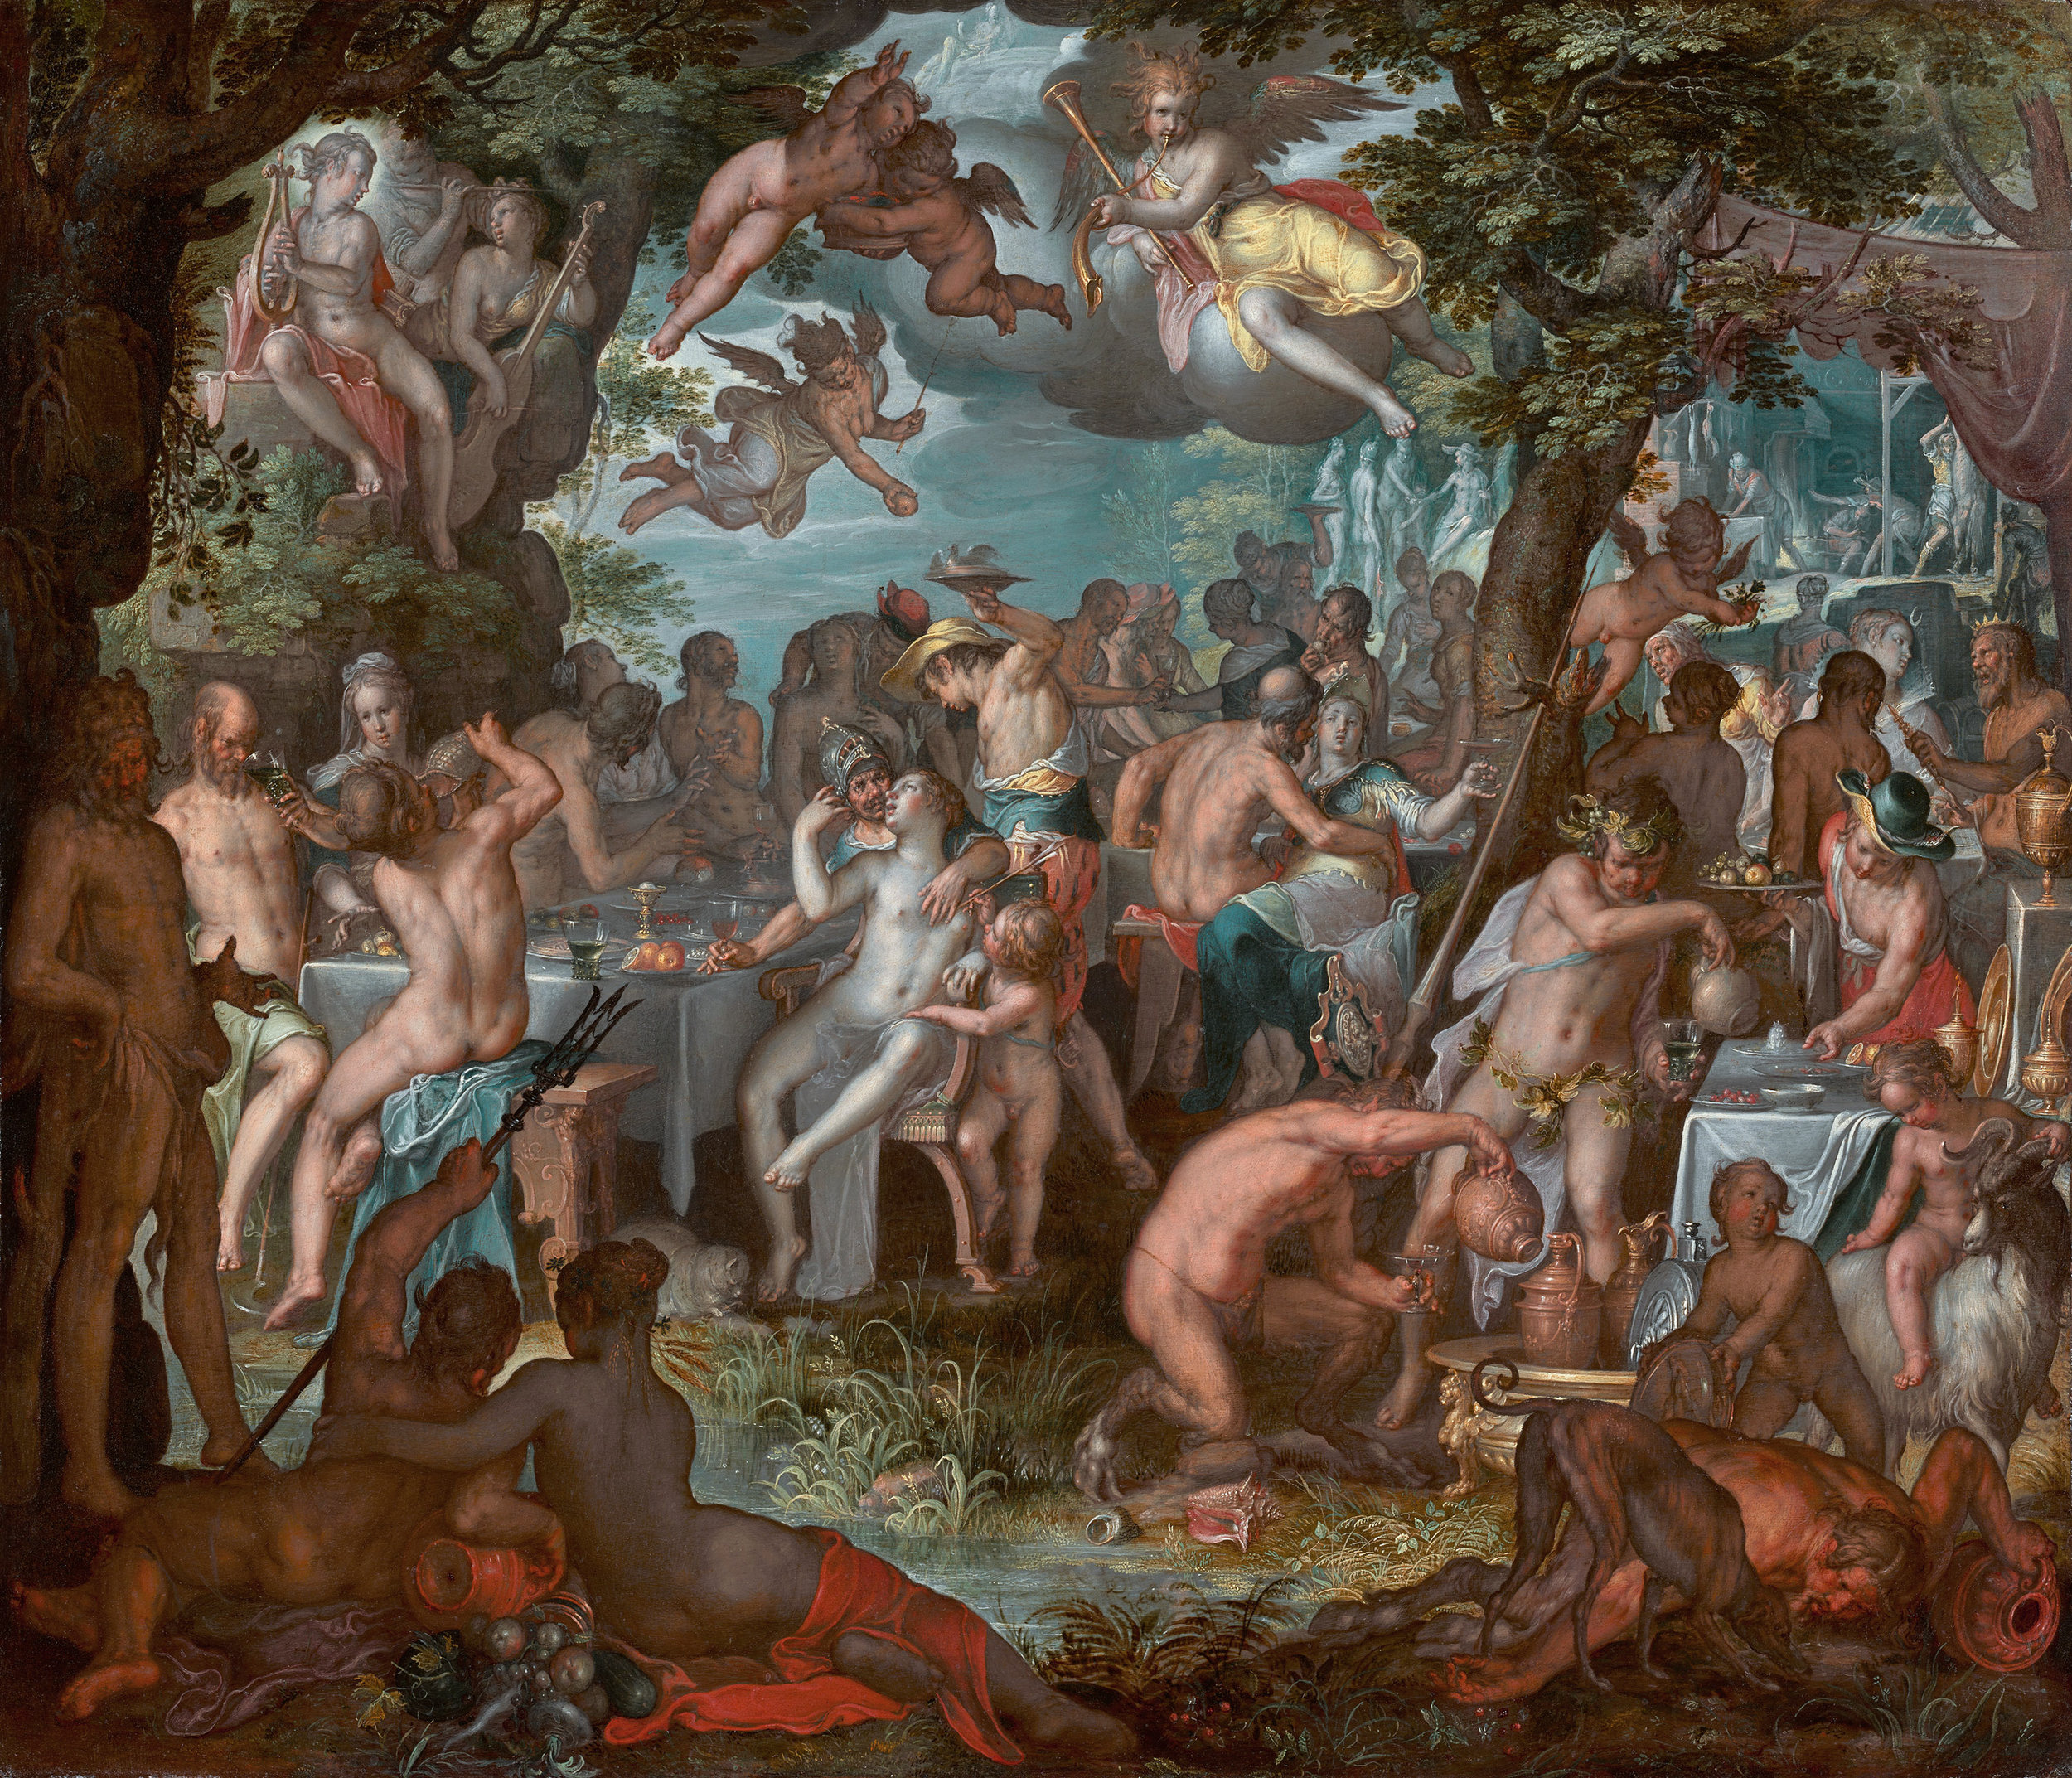 The_wedding_of_Peleus_and_Thetis,_by_Joachim_Wtewael.jpg